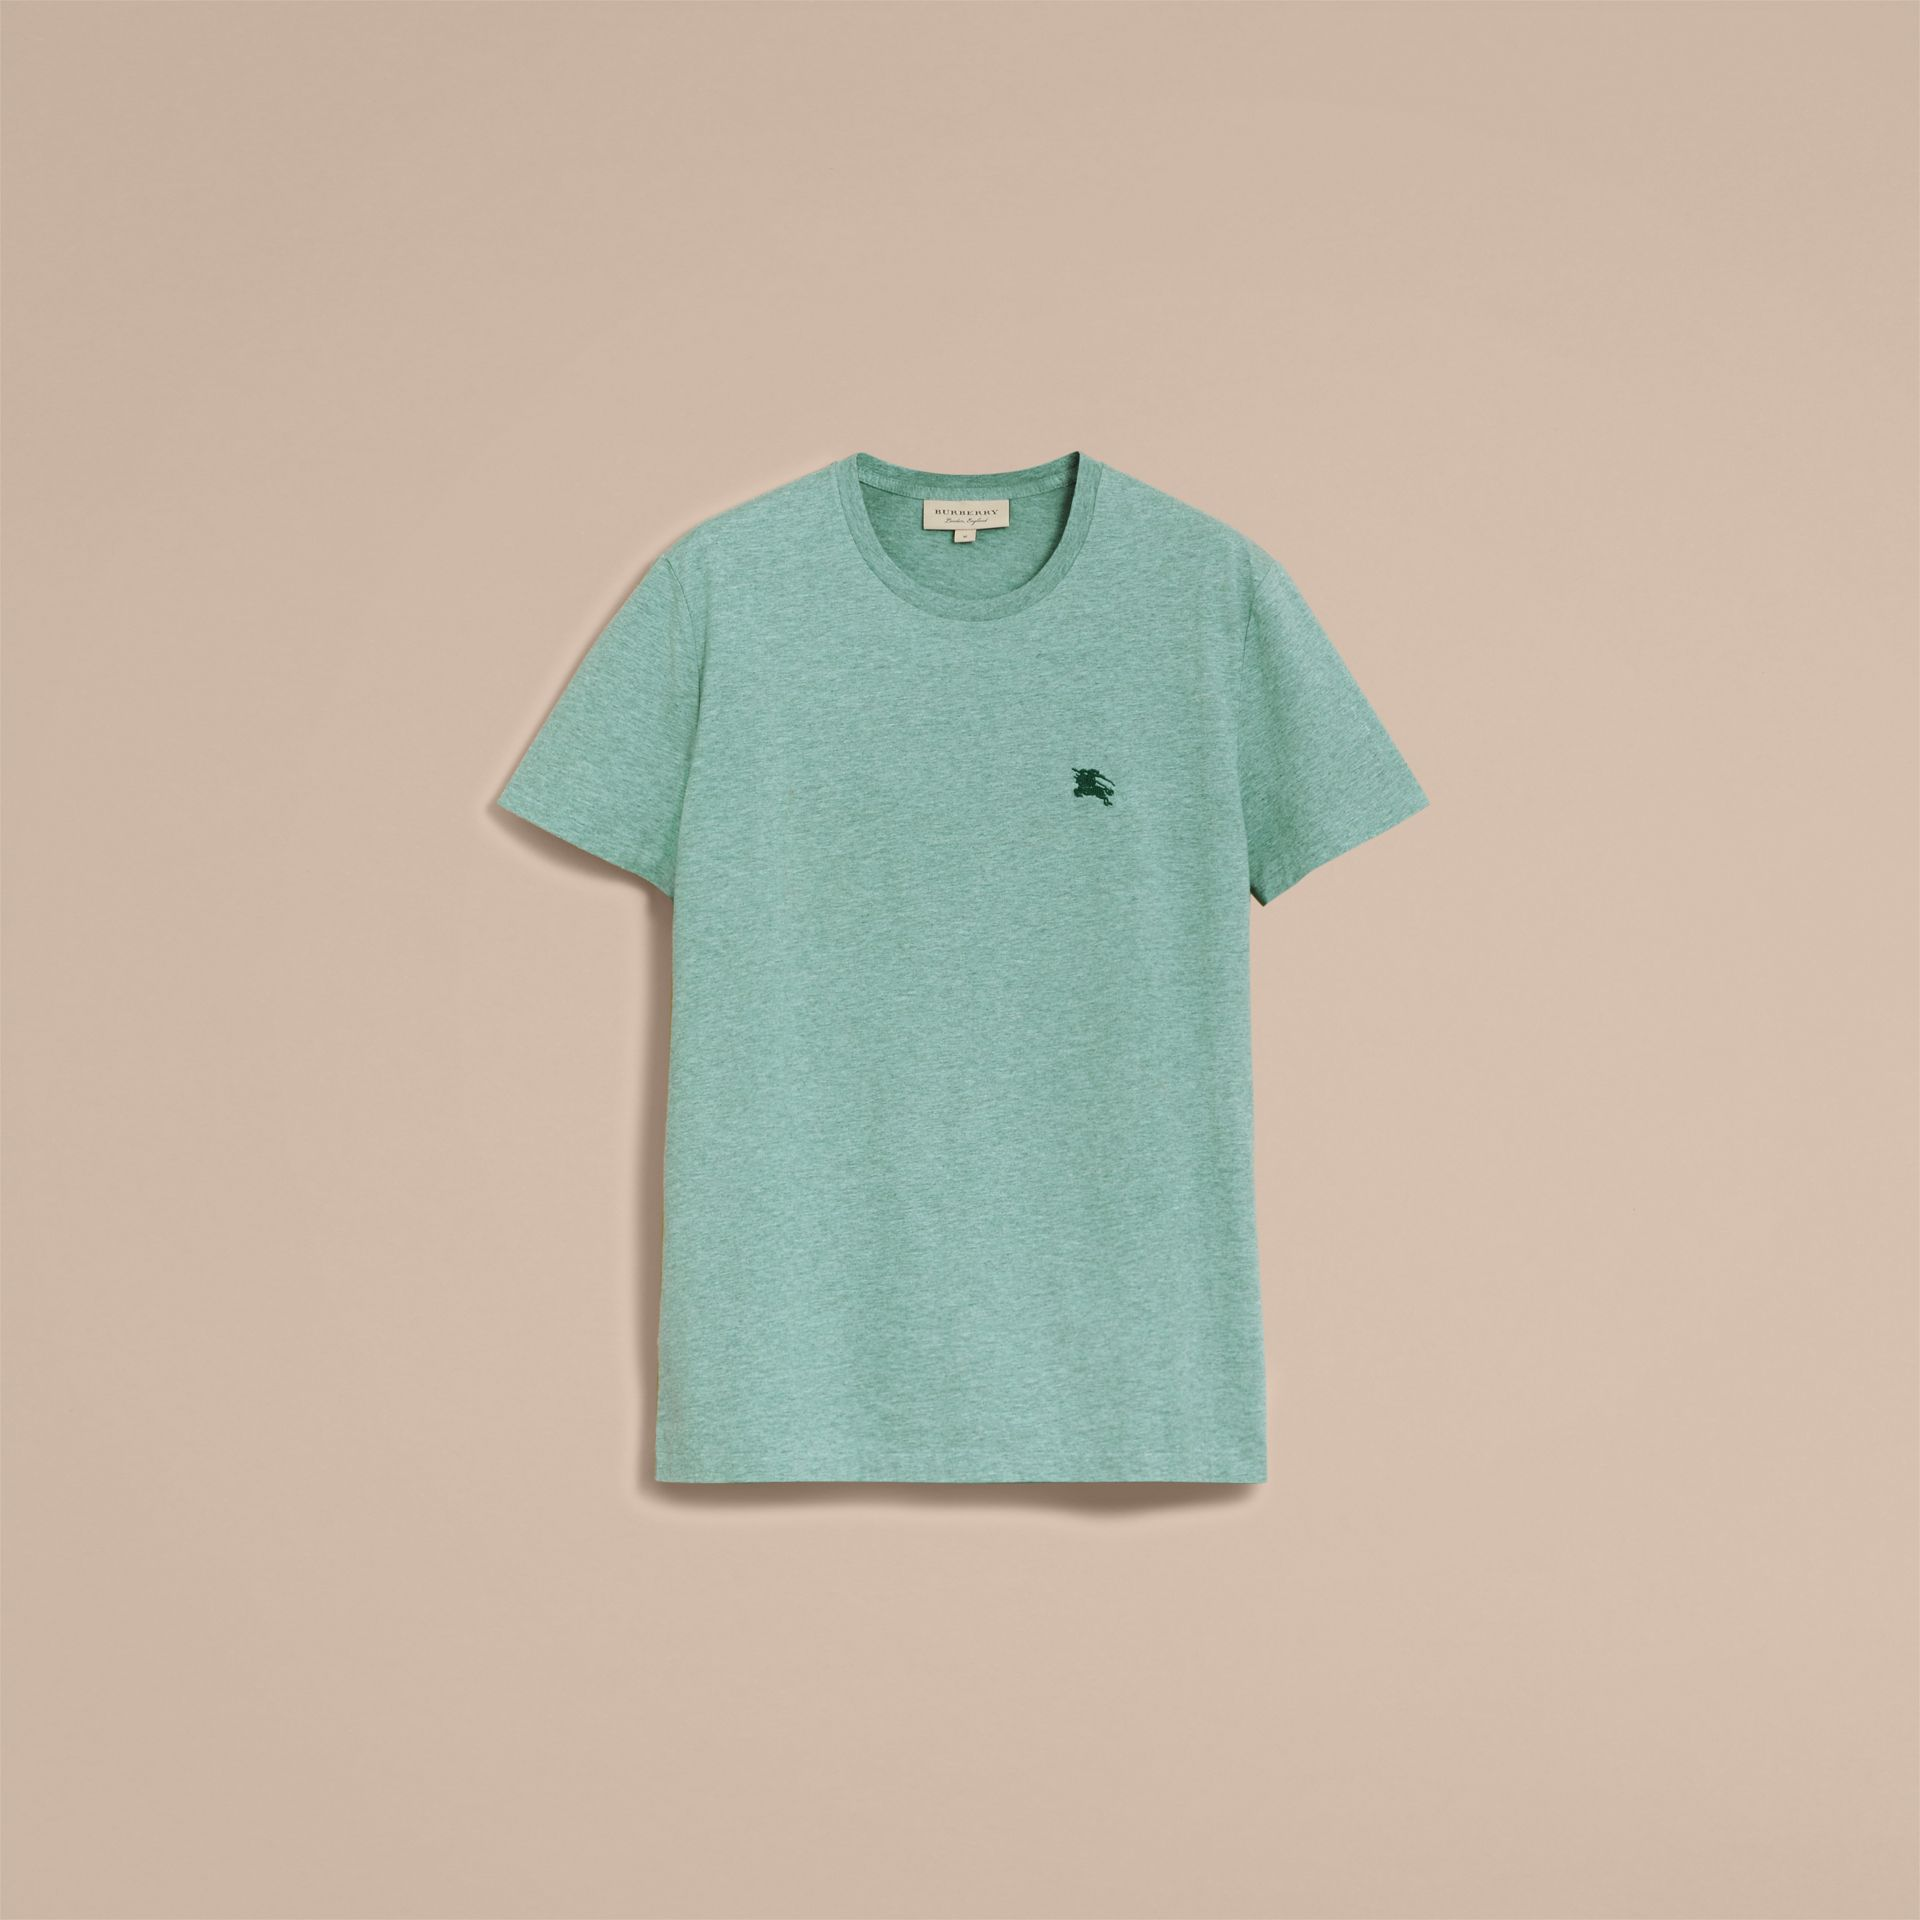 Cotton Jersey T-shirt in Storm Green Melange - Men | Burberry Singapore - gallery image 4